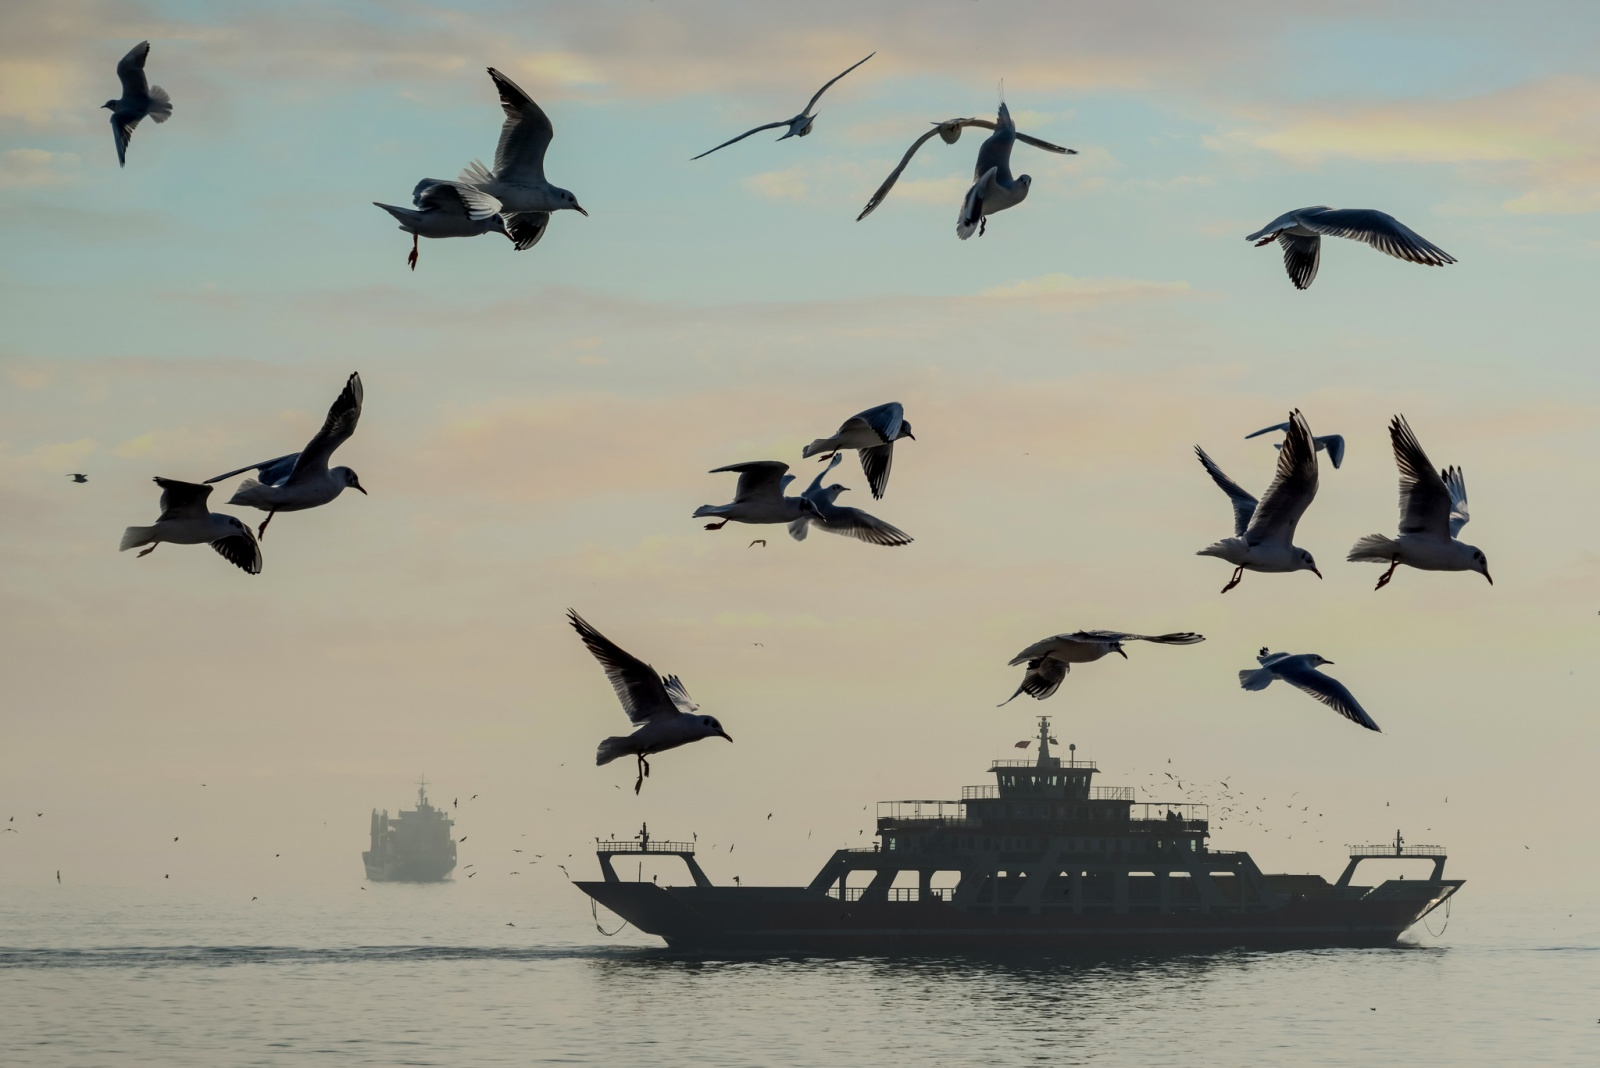 Yalova Ferry and Seagulls